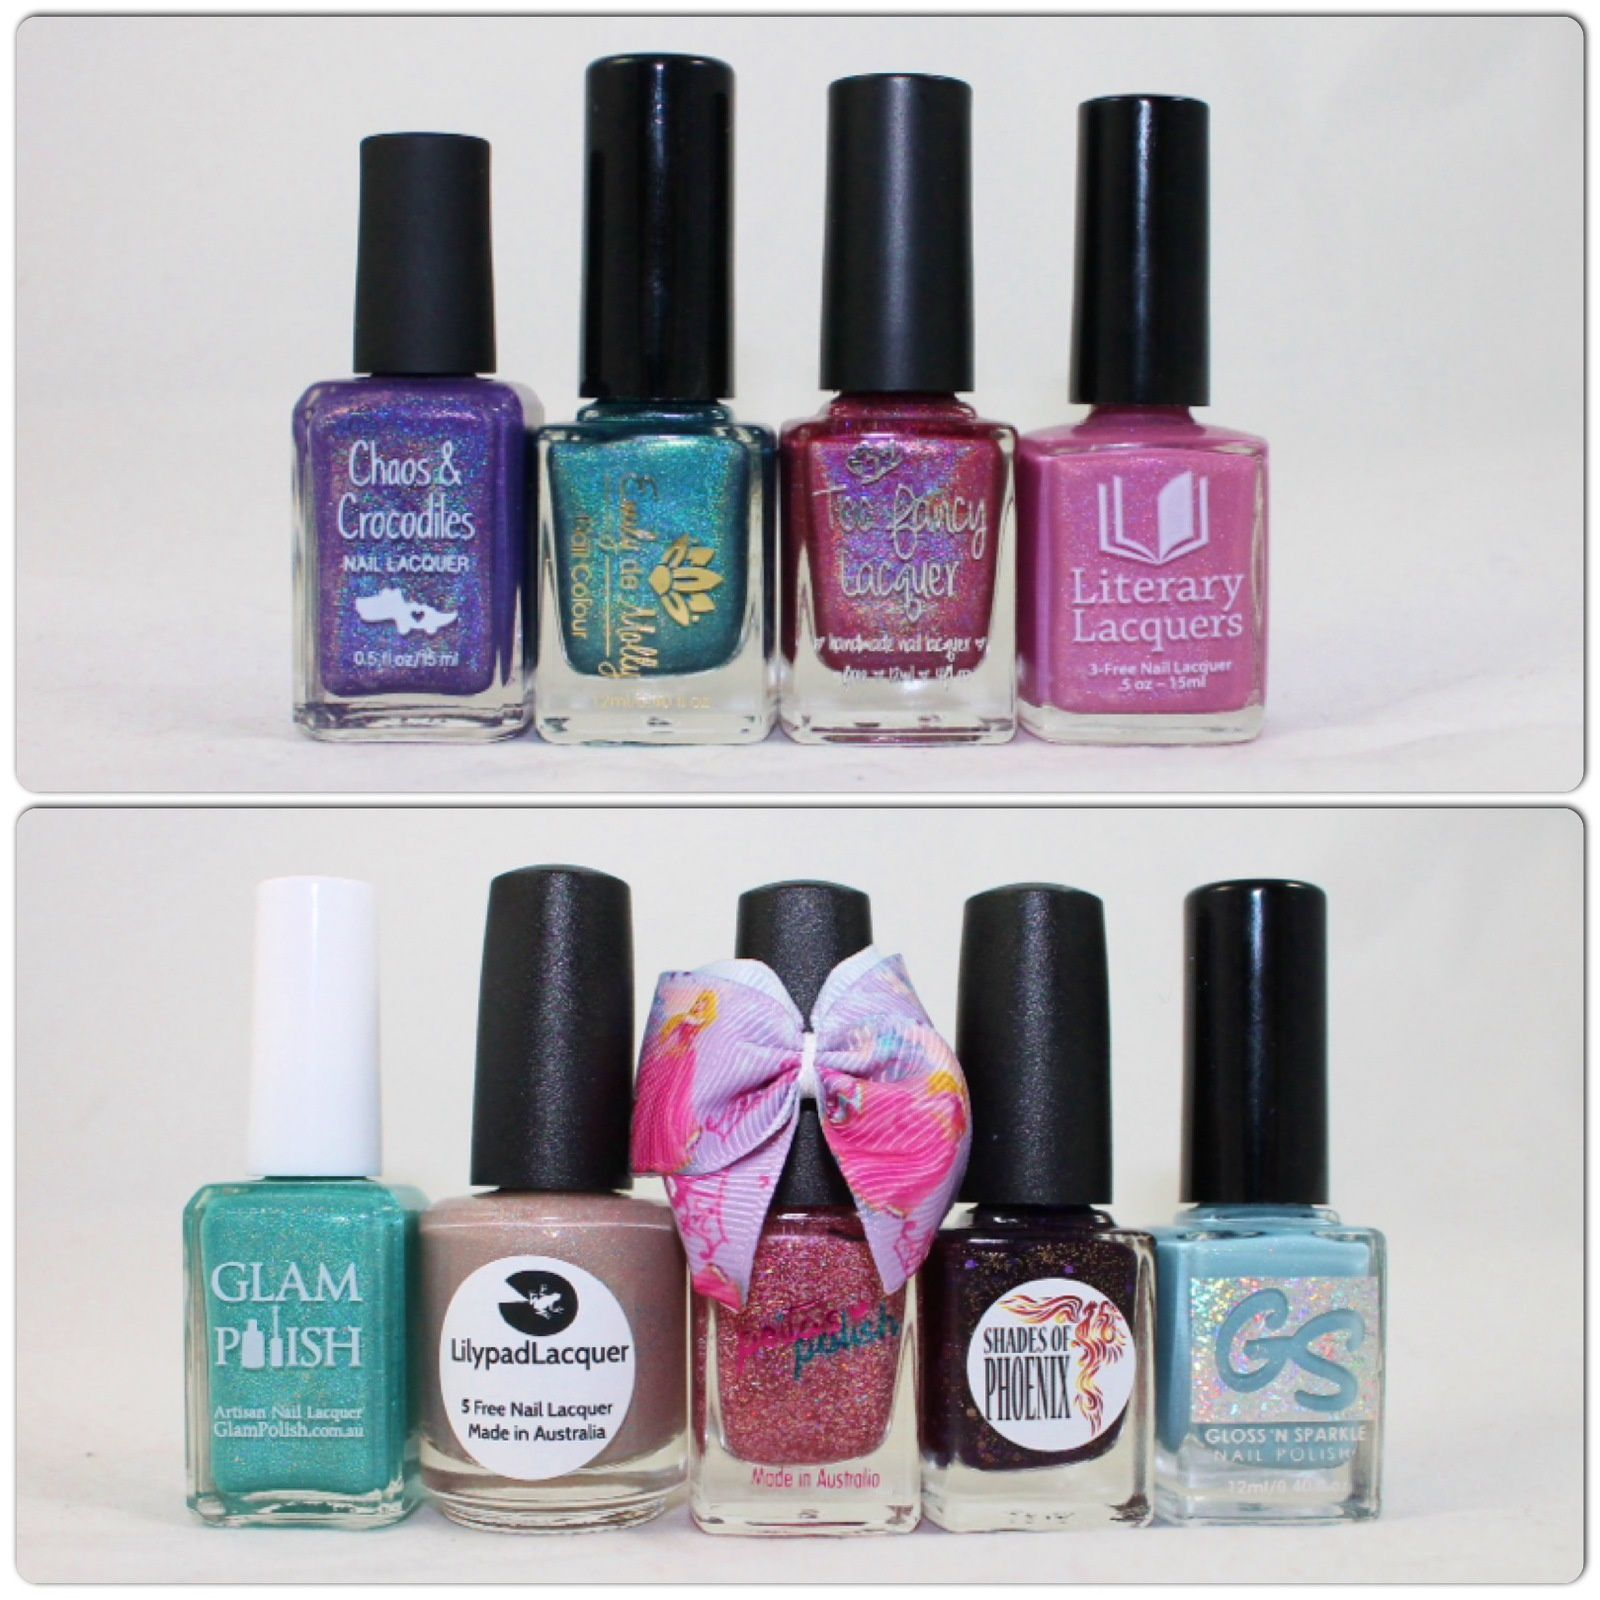 The Holo Grail Box by Dazzled - February 2015 - What is a Youth & What's Indie Box - March 2015 - Disney Princess